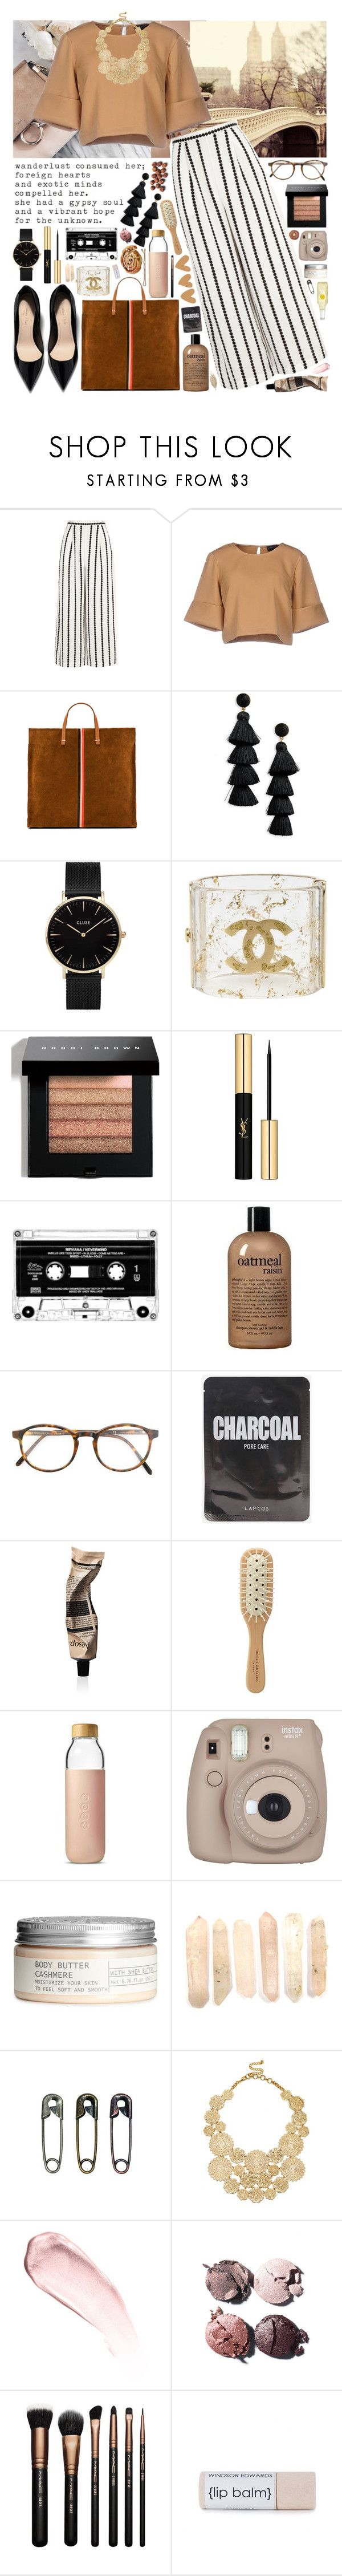 """""""Wanderlust"""" by laurengoode23 ❤ liked on Polyvore featuring Finders Keepers, The Fifth Label, Clare V., BaubleBar, CLUSE, Chanel, Bobbi Brown Cosmetics, Yves Saint Laurent, philosophy and RetroSuperFuture"""